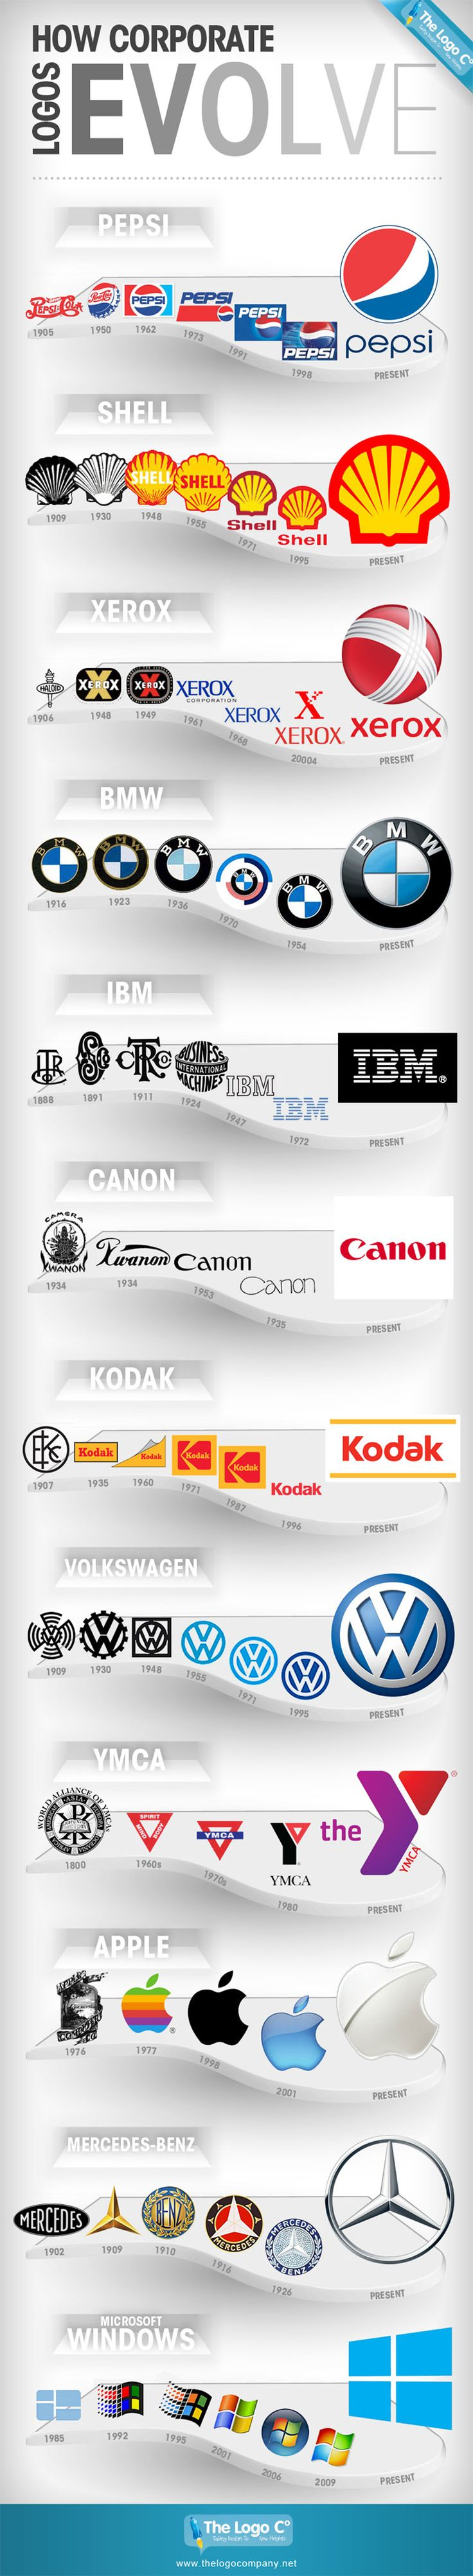 Logos Evolve Infographic #logo #evolution